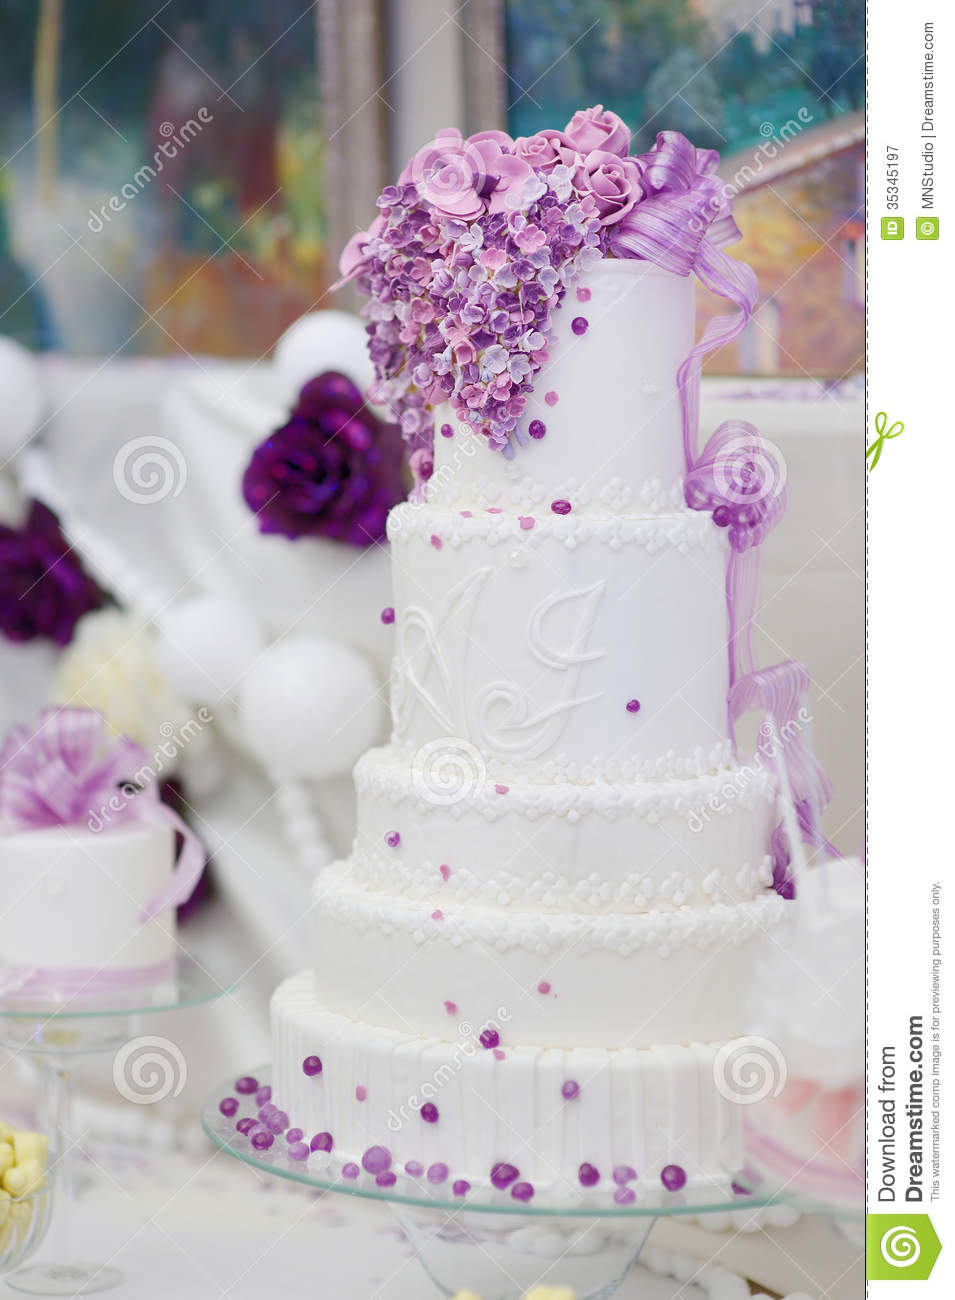 White Wedding Cake Decorated With Purple Flowers Royalty Free ...